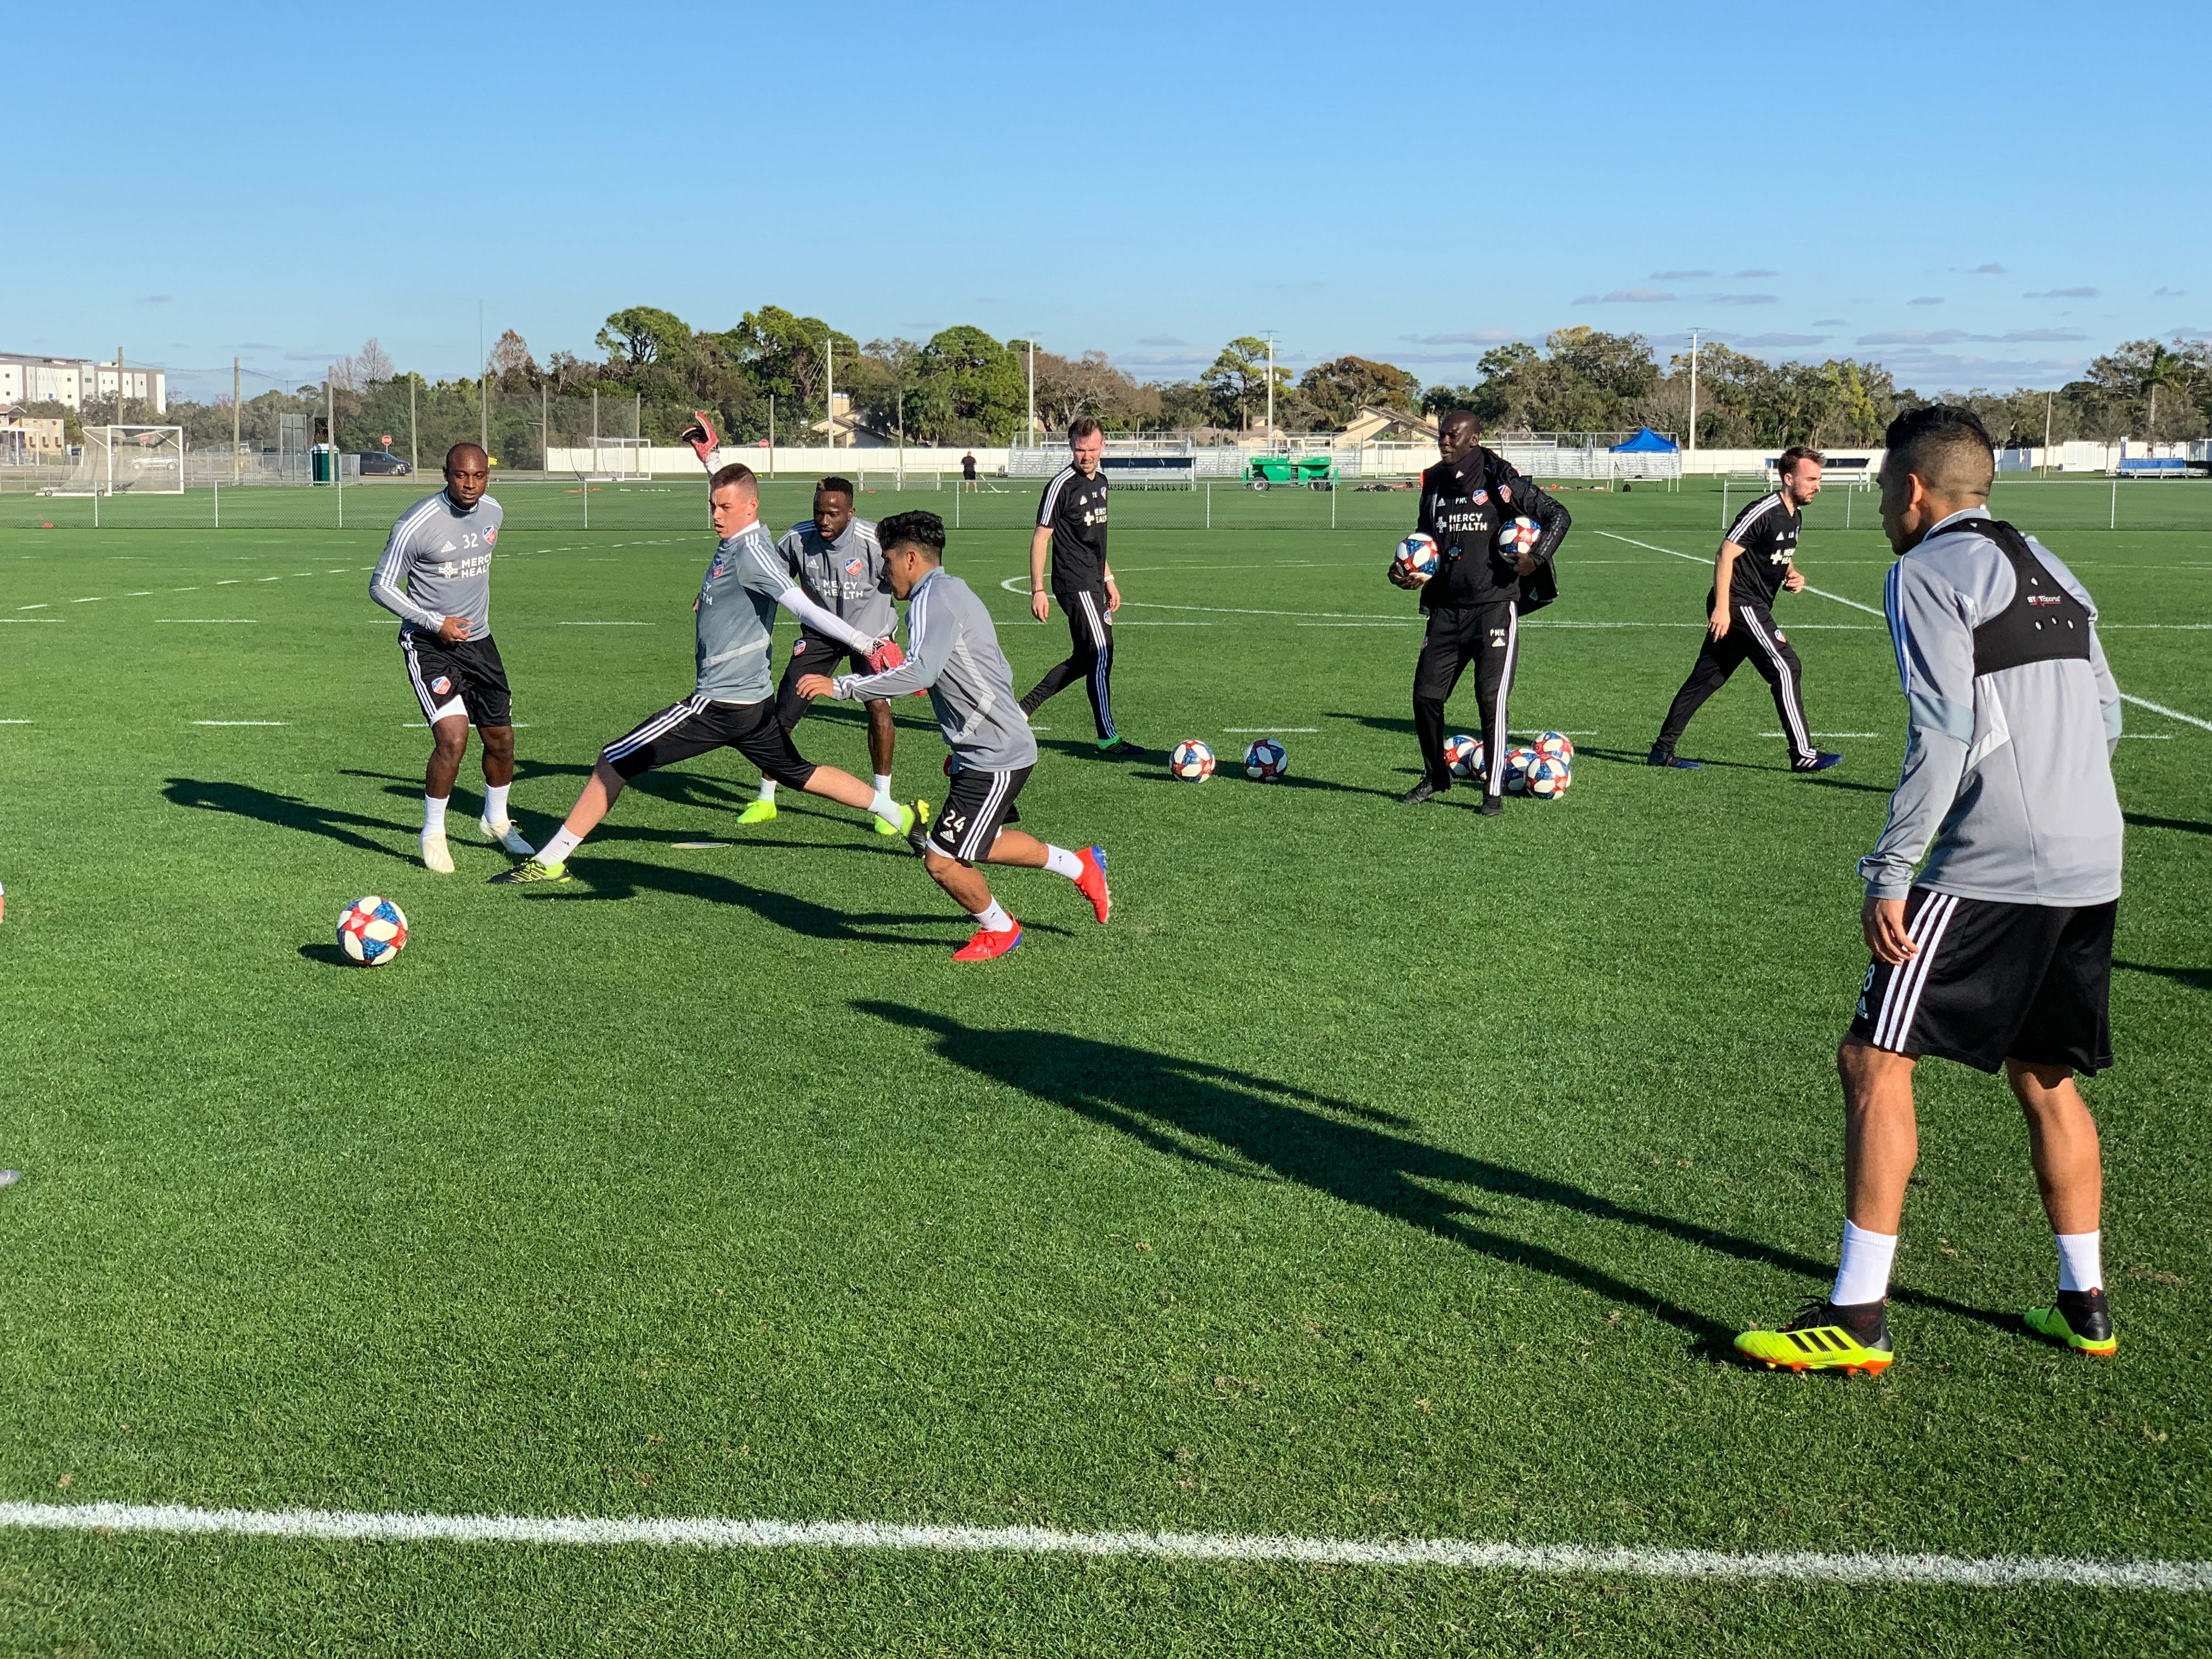 FC Cincinnati players play keep-away-style games Monday, Jan. 28, during the second of two practice sessions that day at IMG Academy's soccer complex.